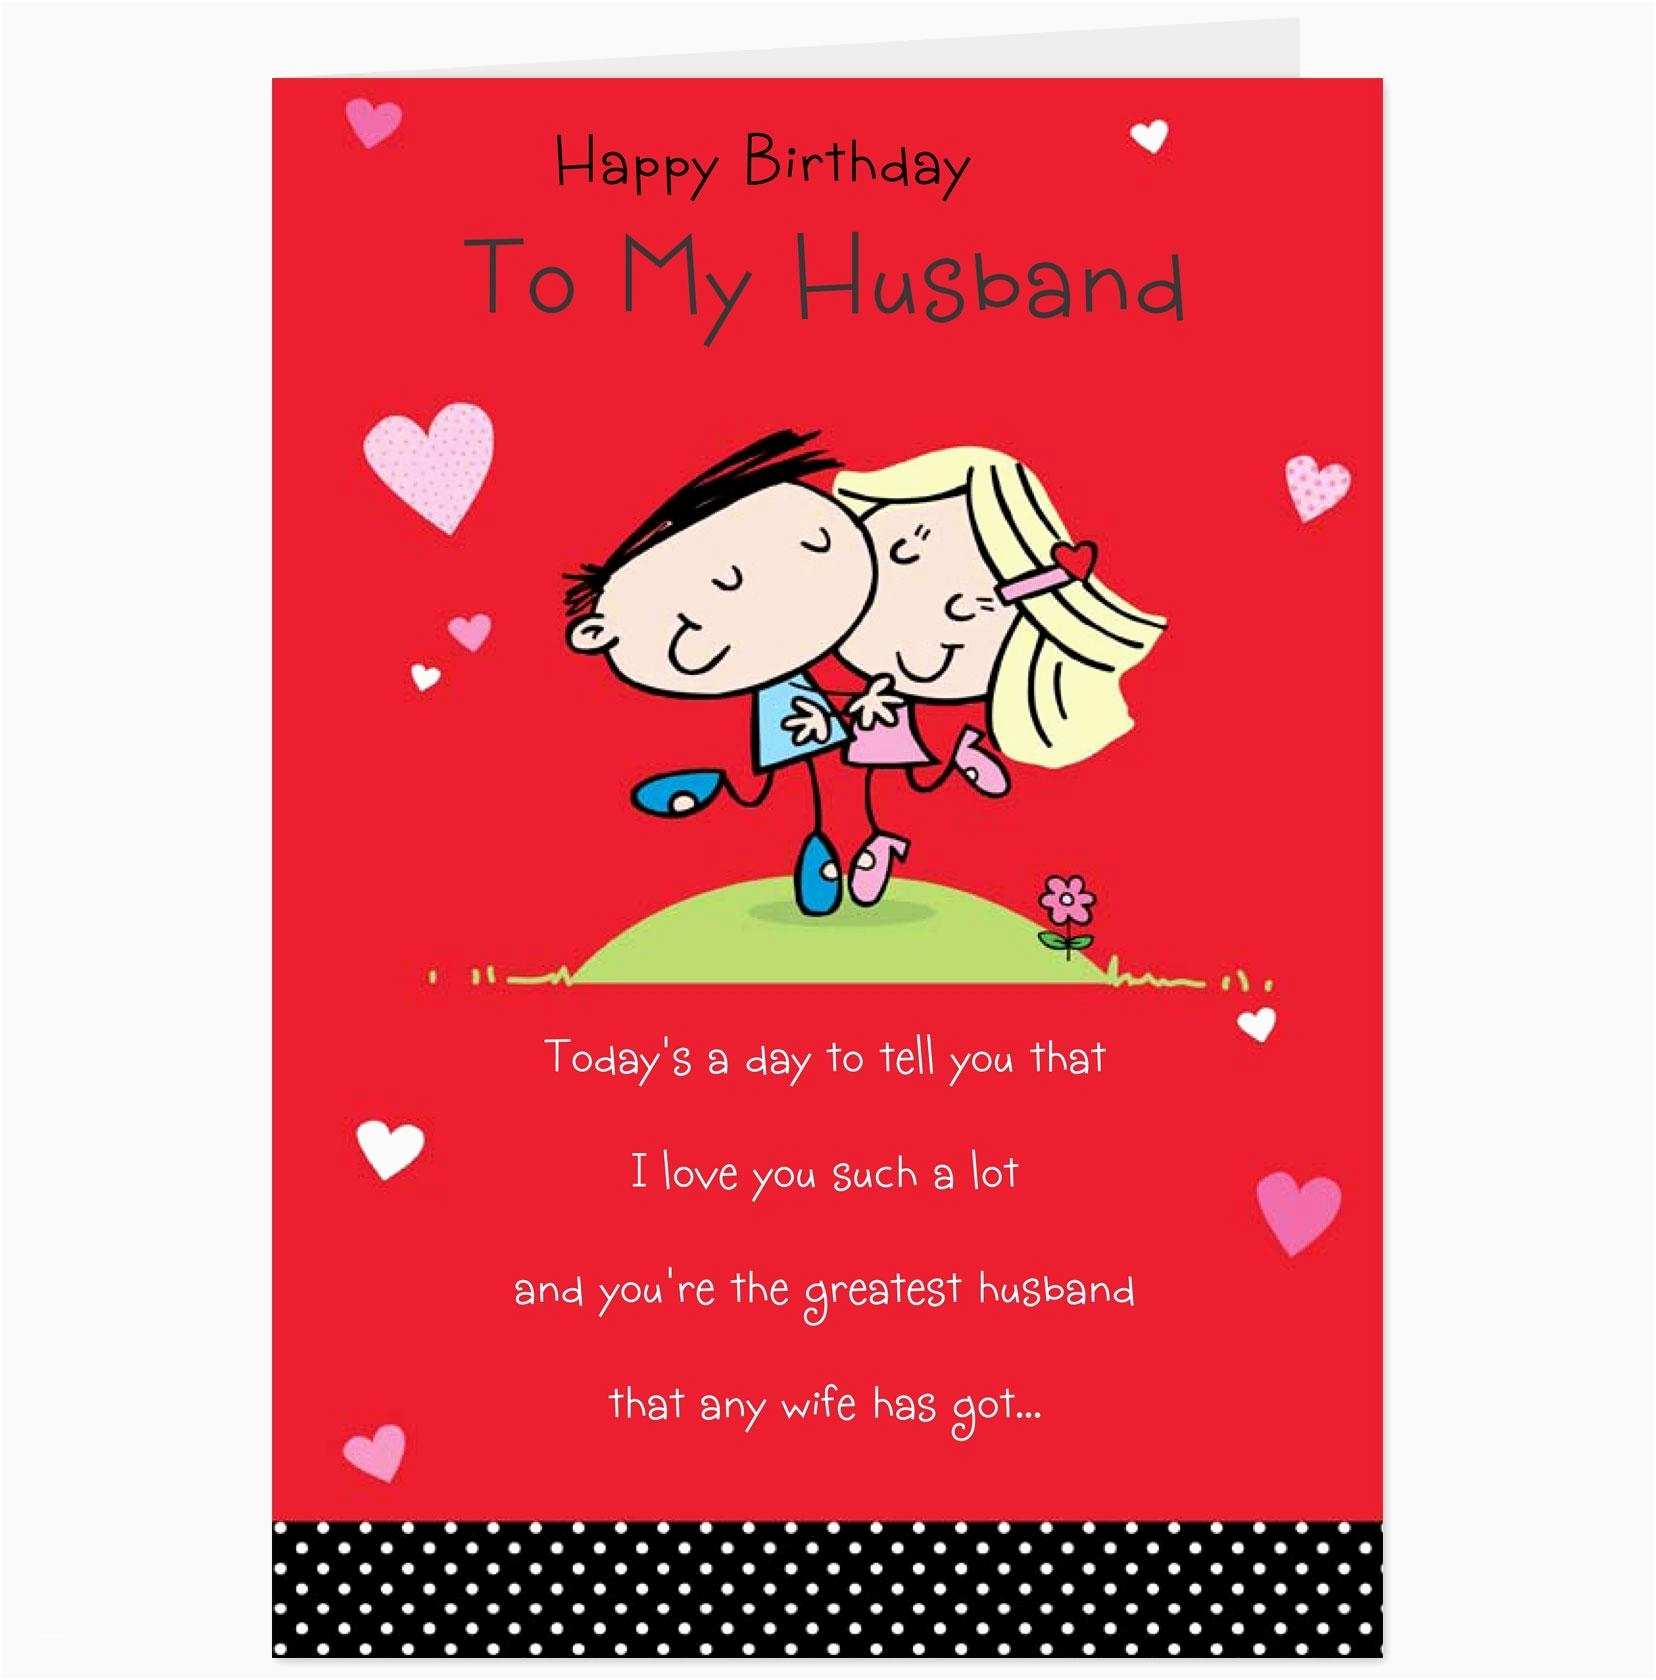 cool birthday message for husband ; birthday-quote-for-husband-inspirational-happy-birthday-wishes-to-husband-funny-birthday-message-for-your-of-birthday-quote-for-husband